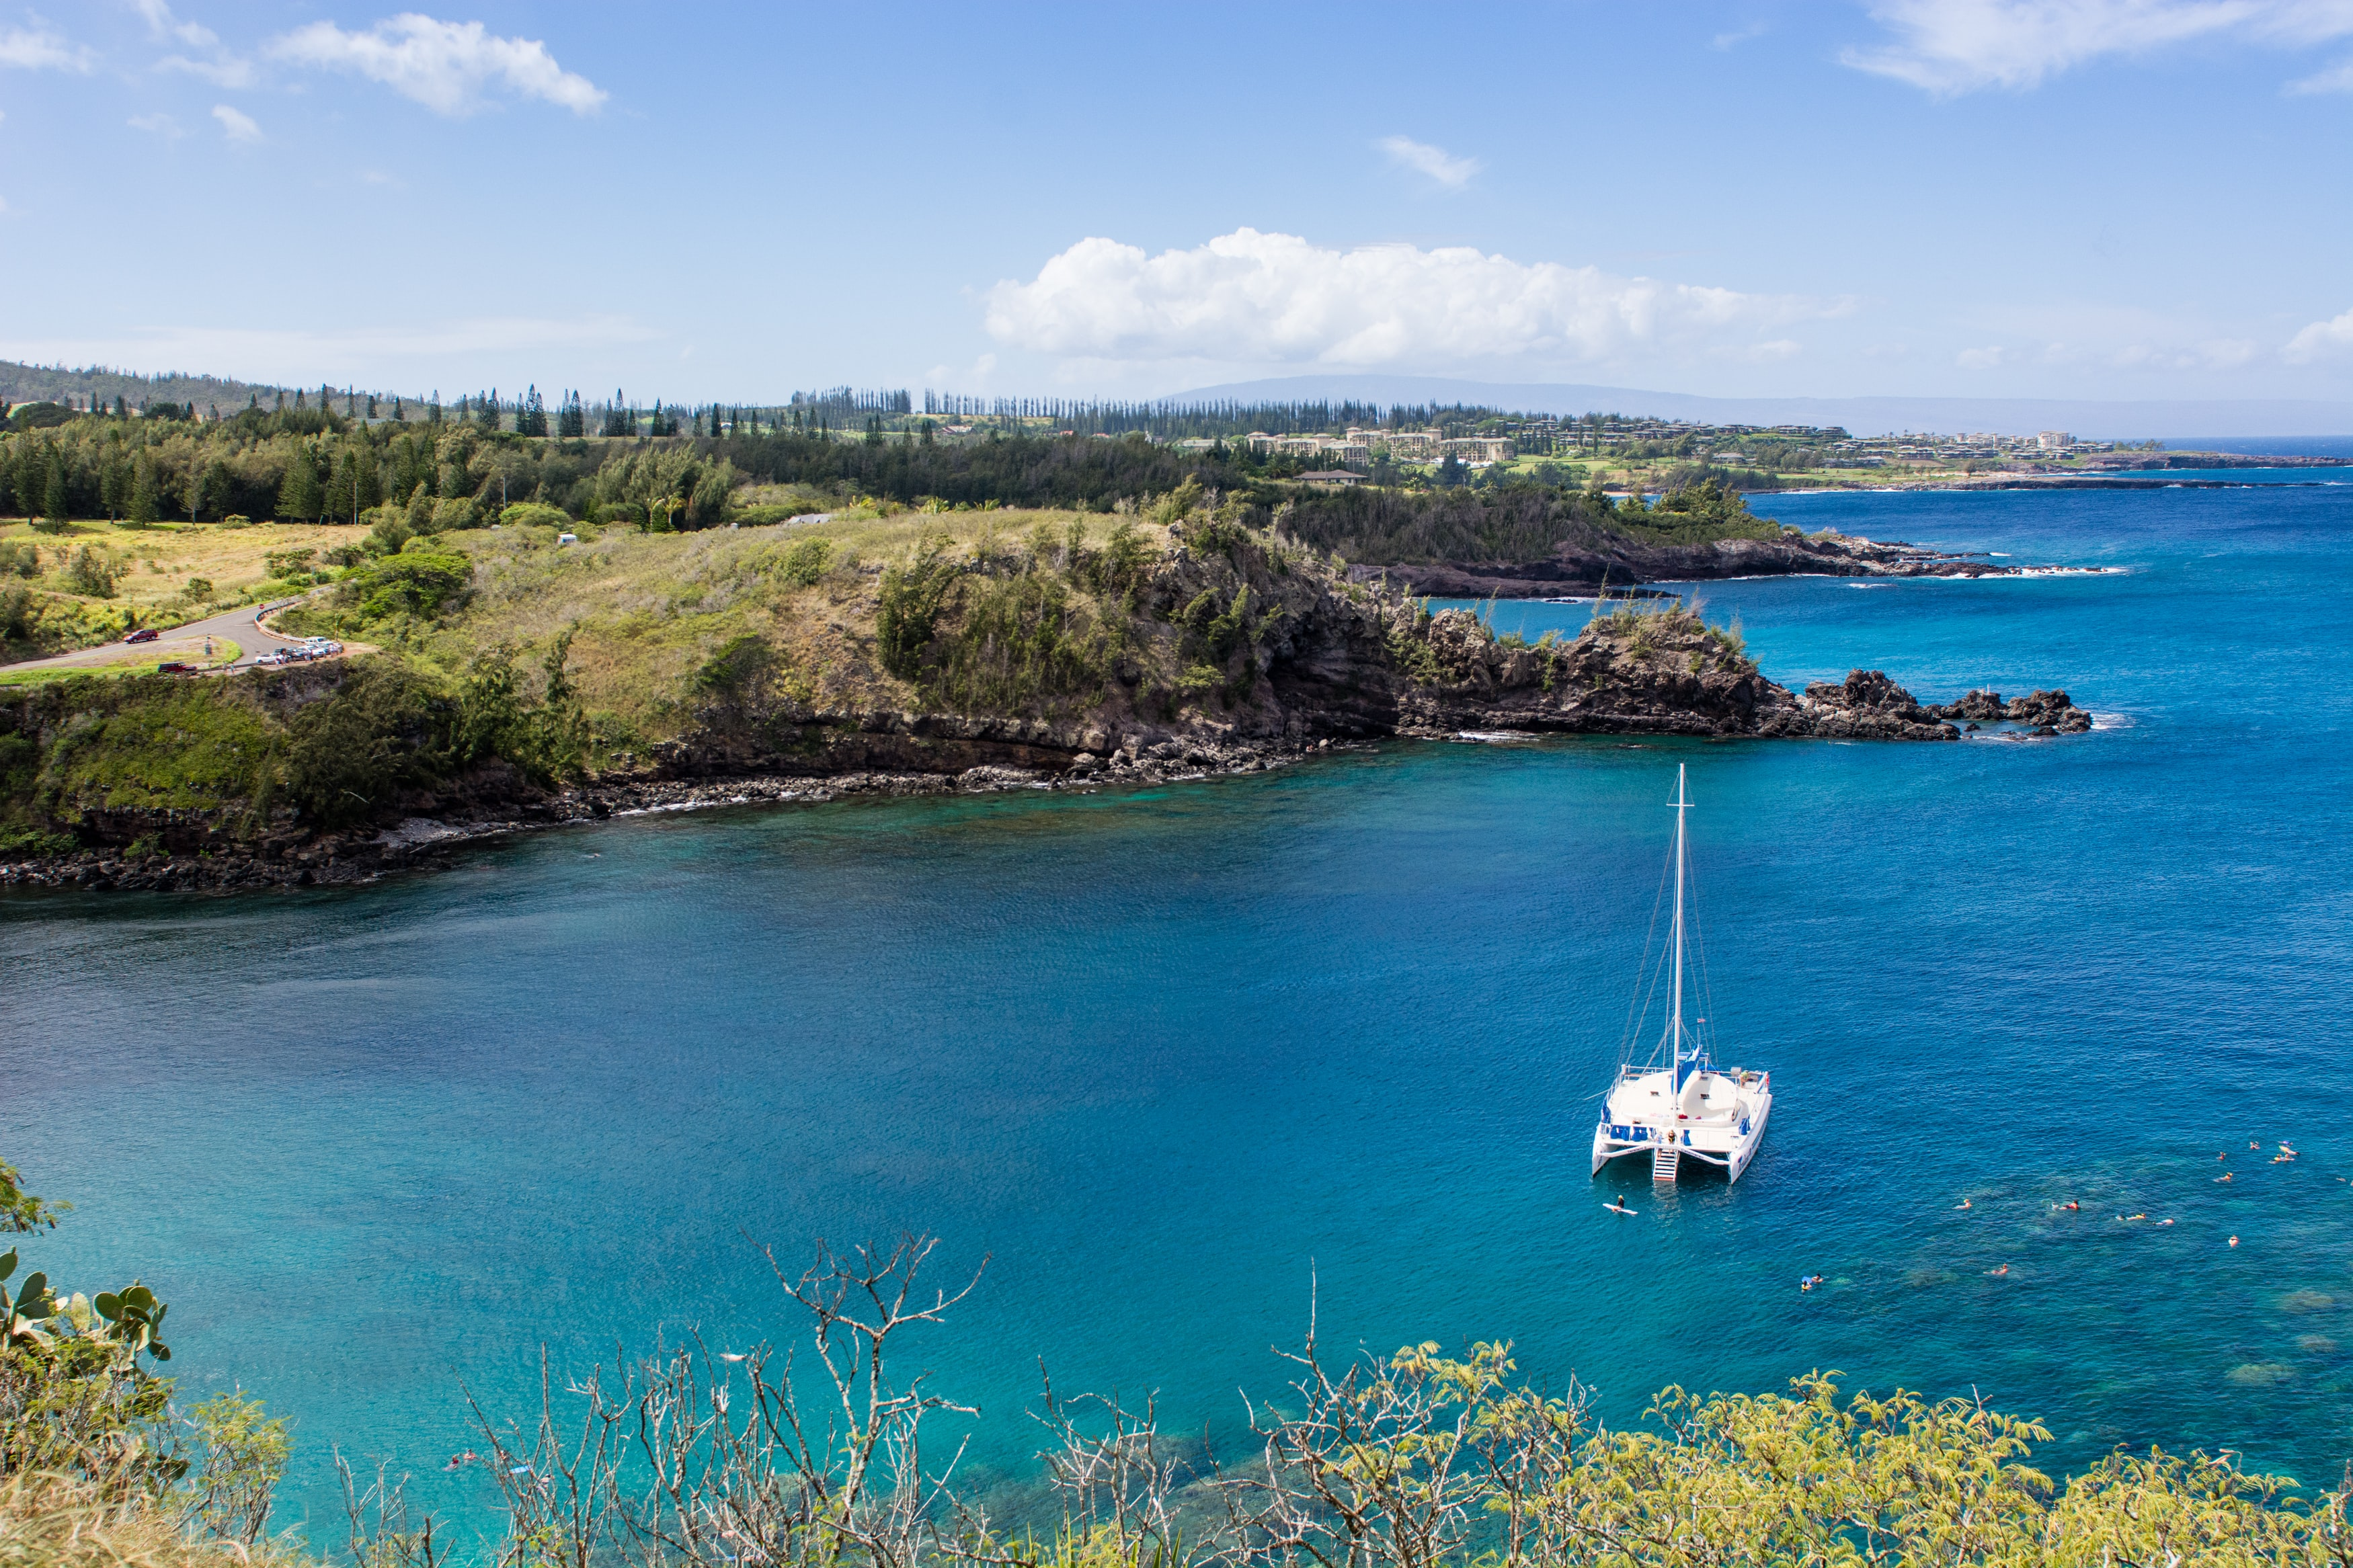 A lone sailboat sitting in a bright blue lagoon along a green forest in Maui